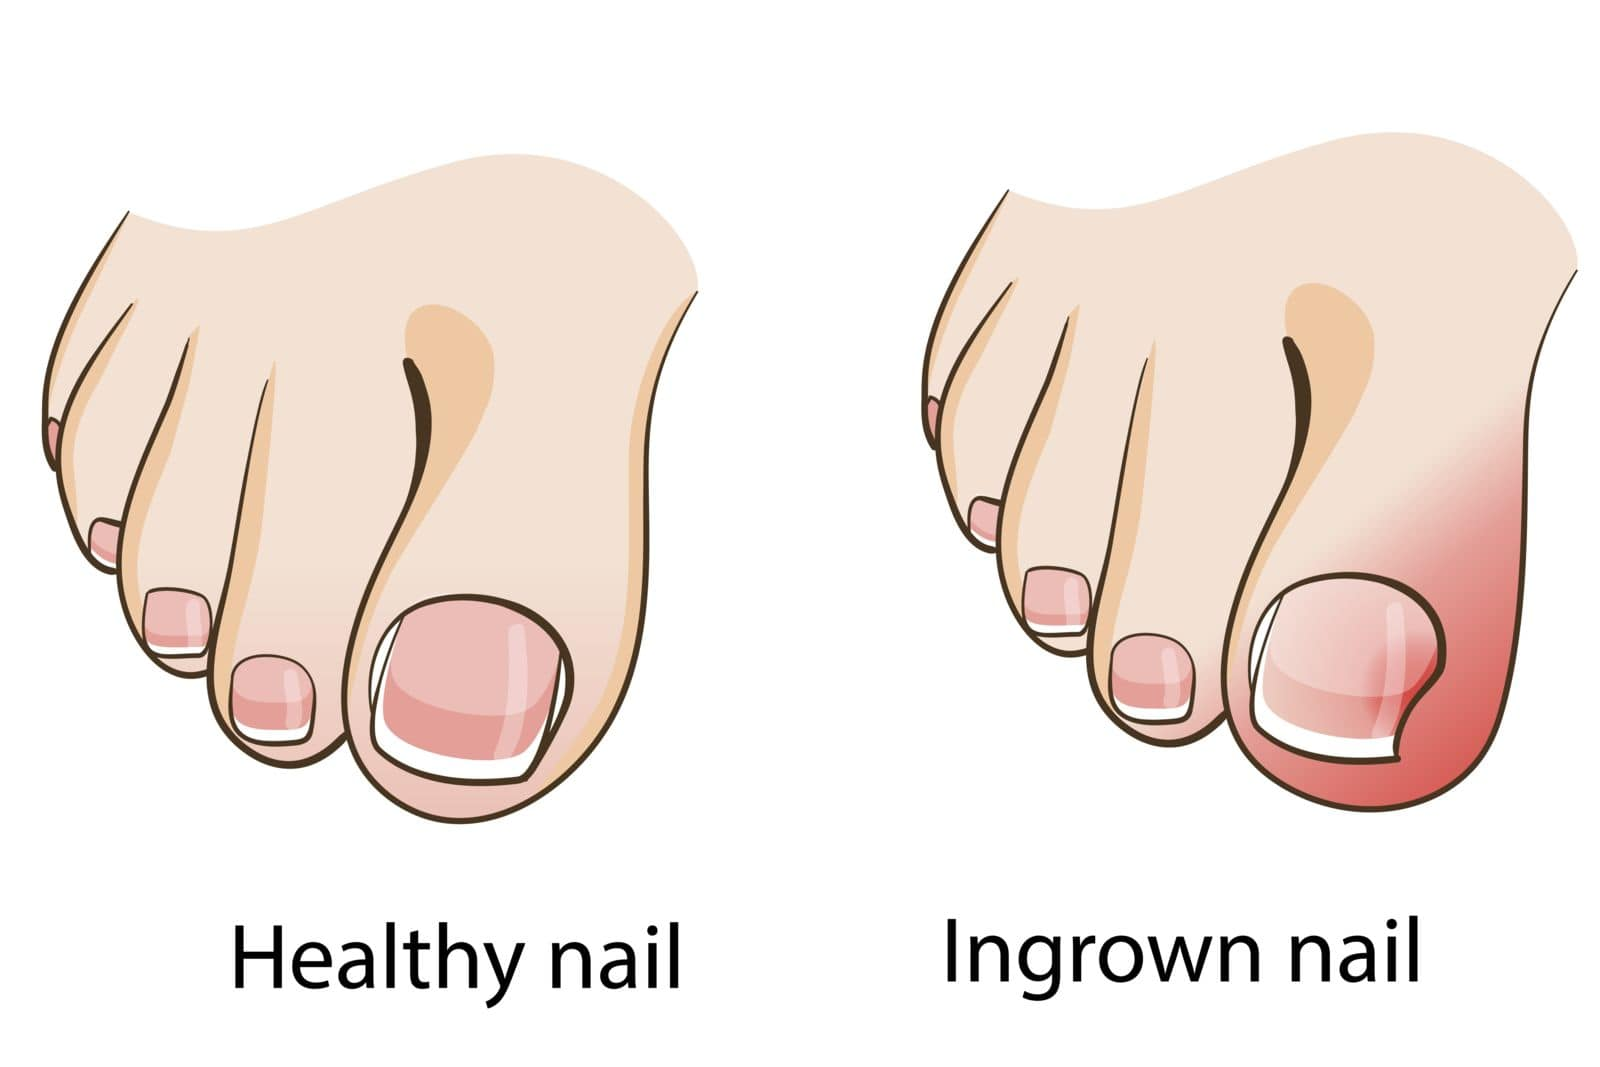 graphic drawing of a healthy nail side by side with an ingrown nail